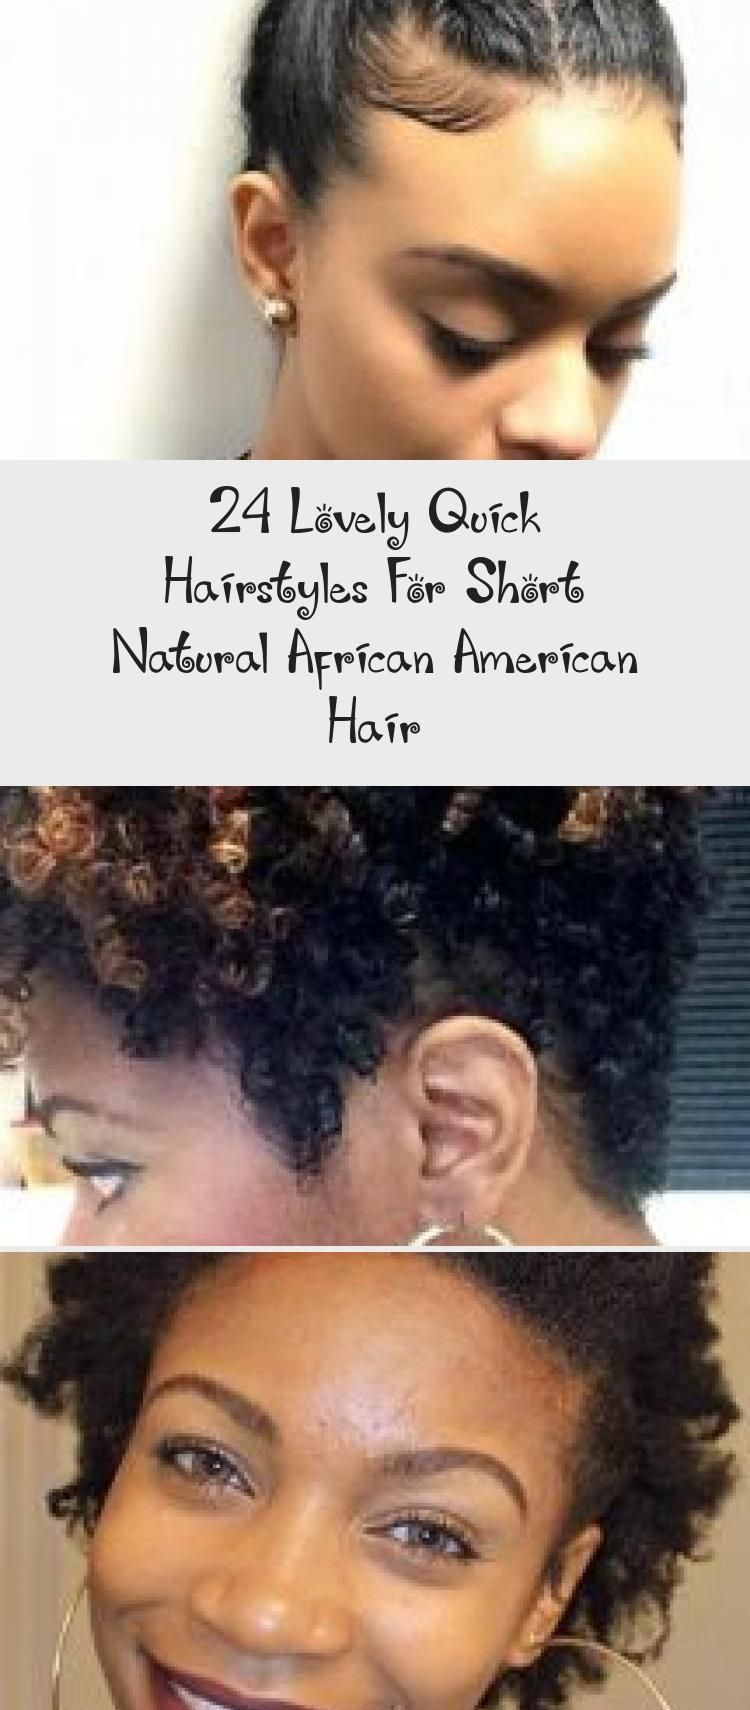 24 Lovely Quick Hairstyles For Short Natural African American Hair  Hairstyle